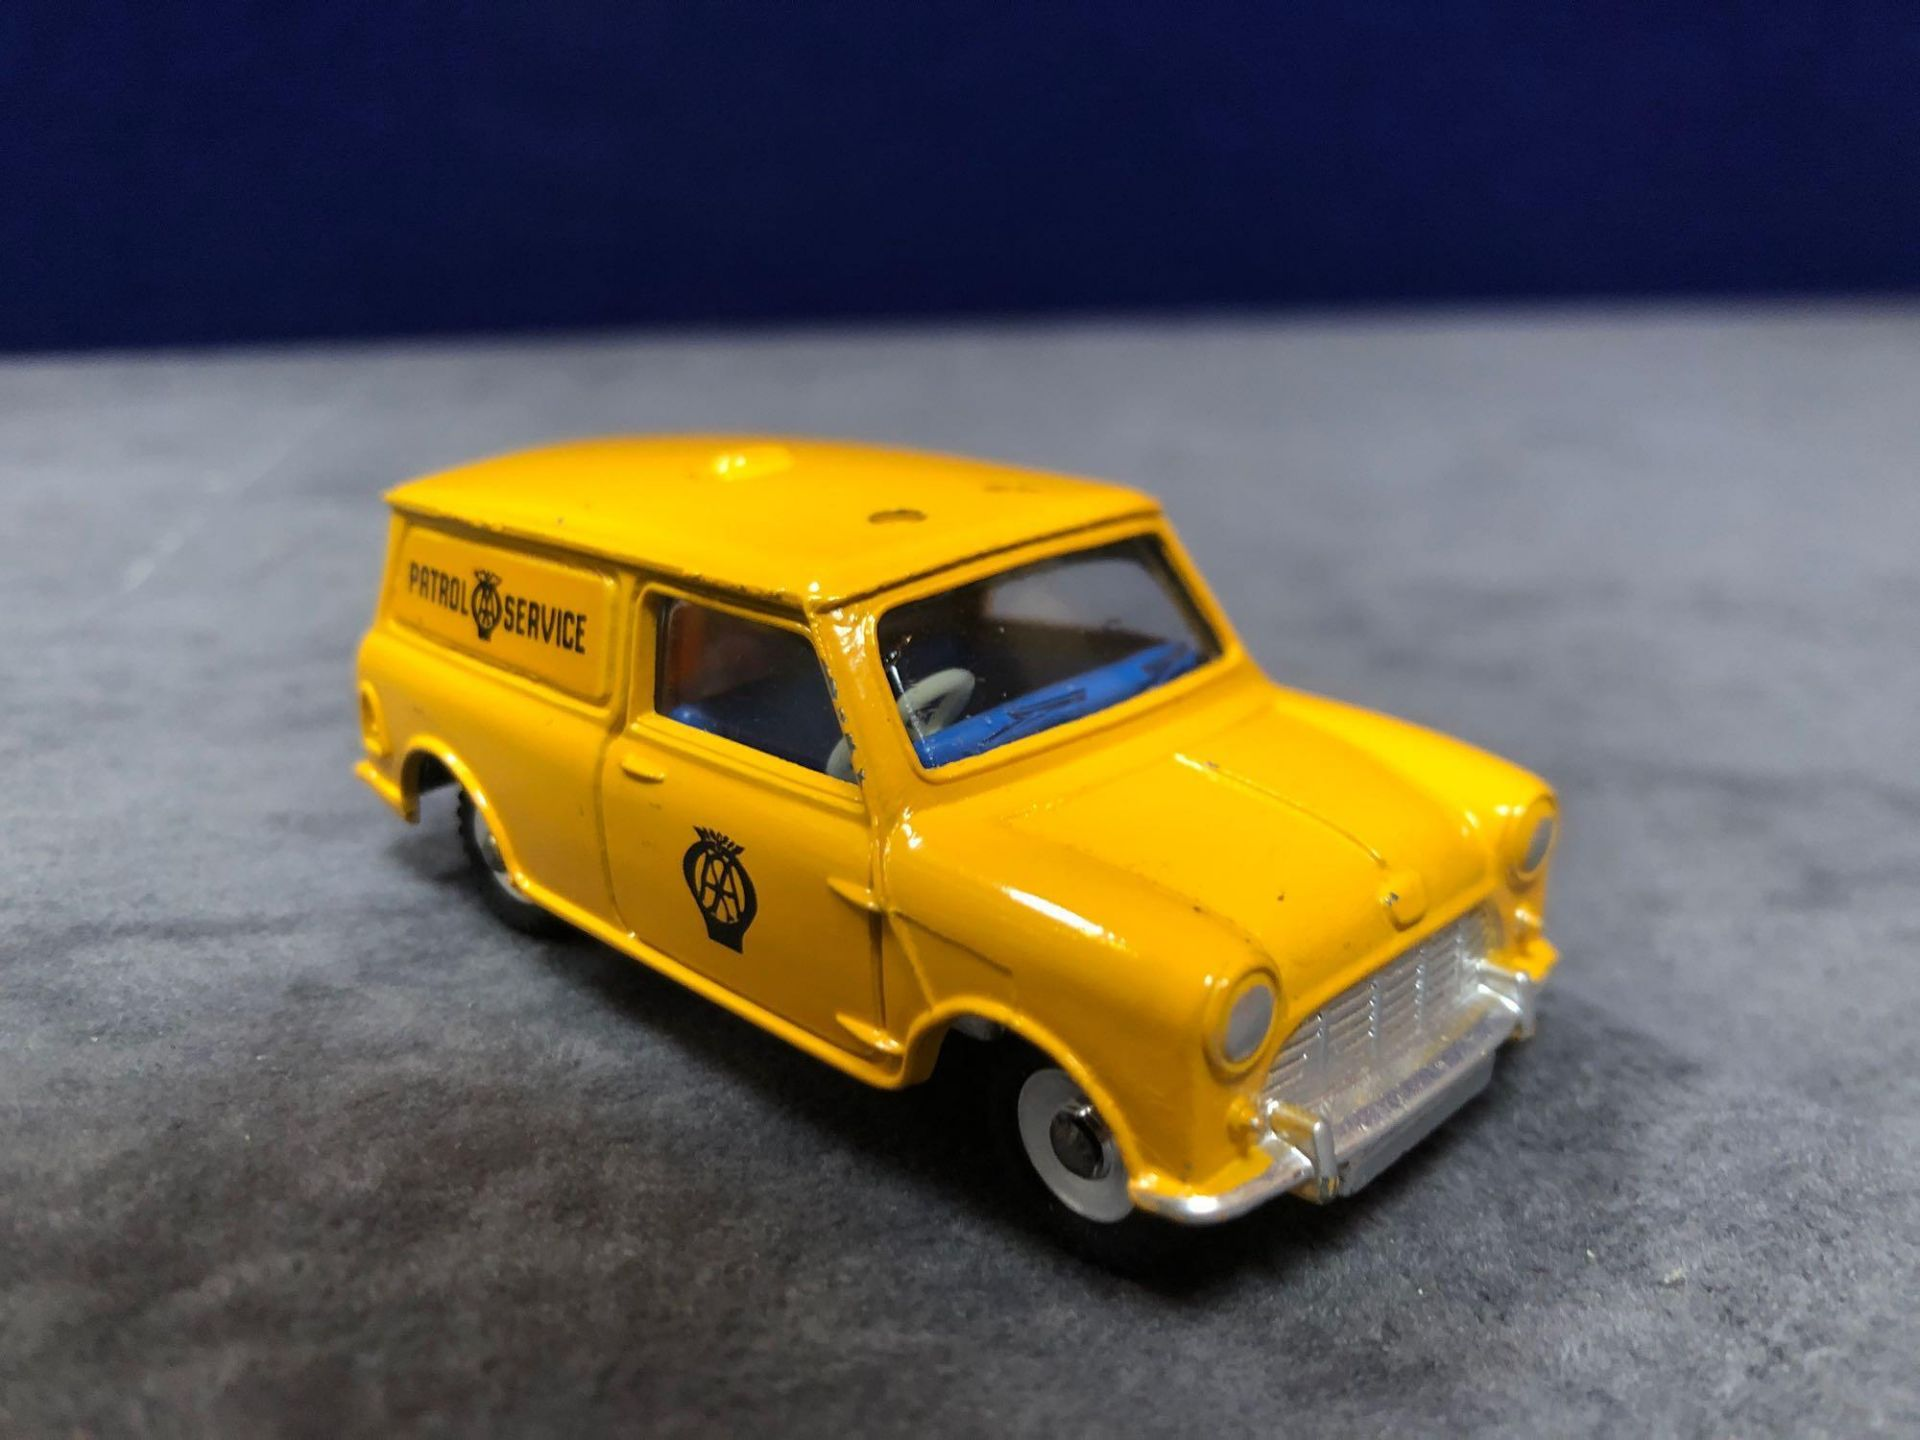 Dinky #274 AA Patrol Mini Van Yellow (AA Service) - Yellow Body And White Roof. AA Service To Van - Image 2 of 4